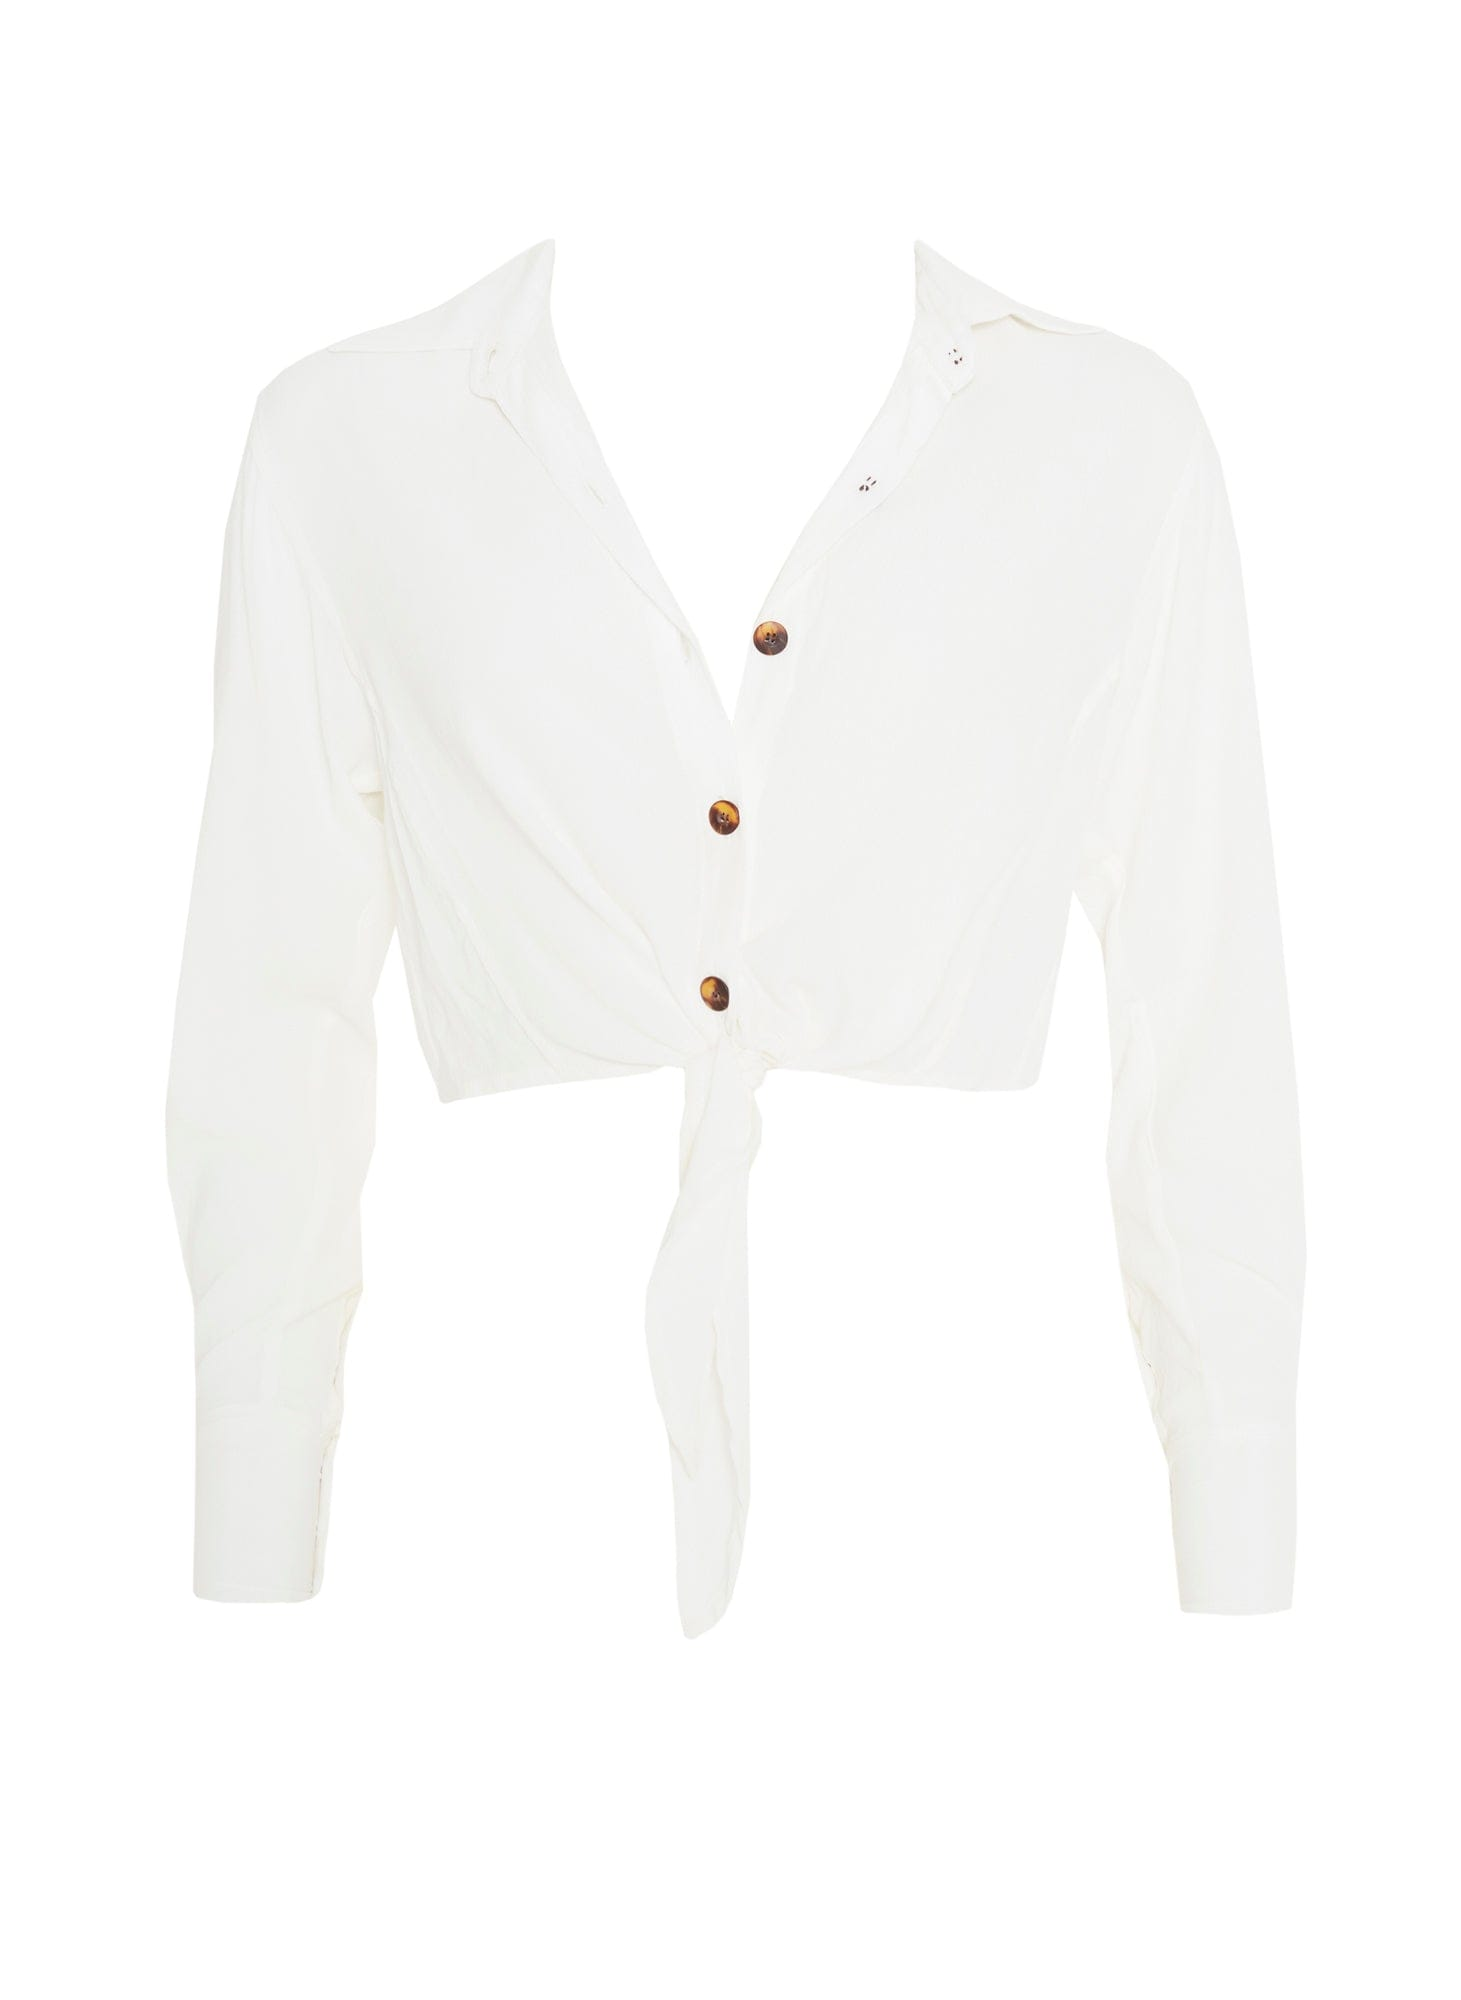 PLAIN WHITE - BEAU RIVAGE SHIRT